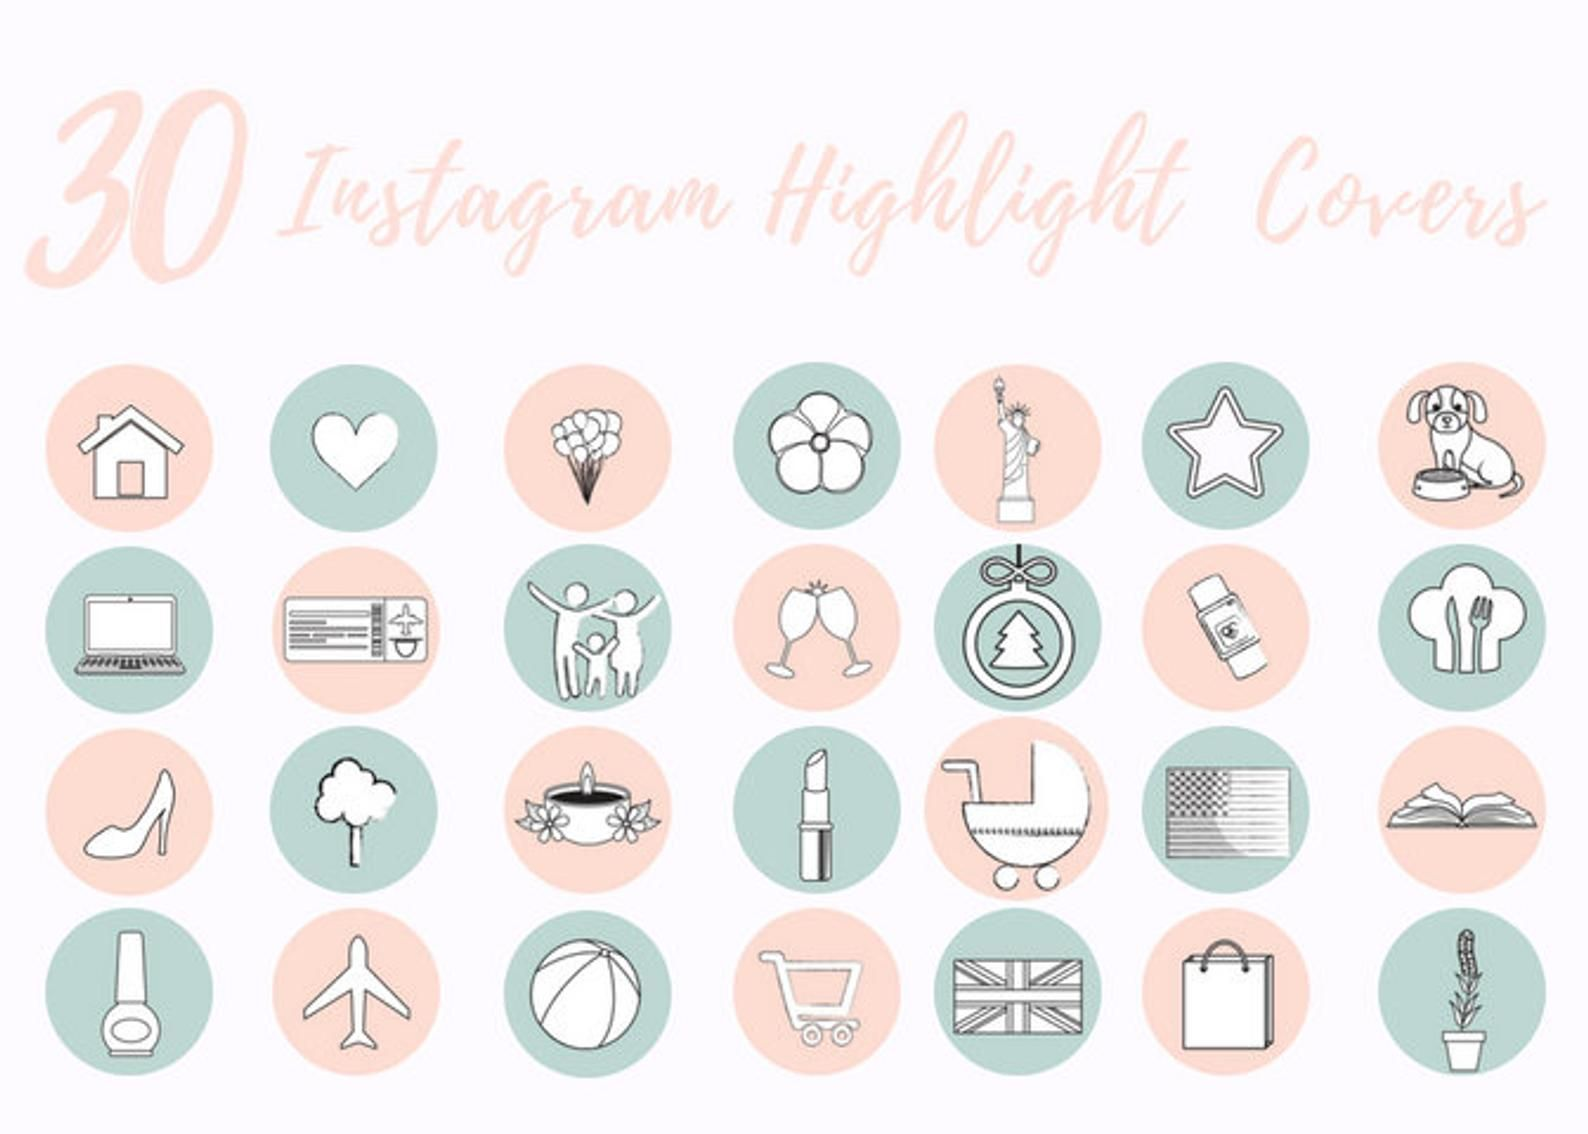 30 Instagram Story Highlight Icons Pastel Pink And Mint Icon Etsy In 2020 Instagram Highlight Icons Instagram Story Instagram Icons